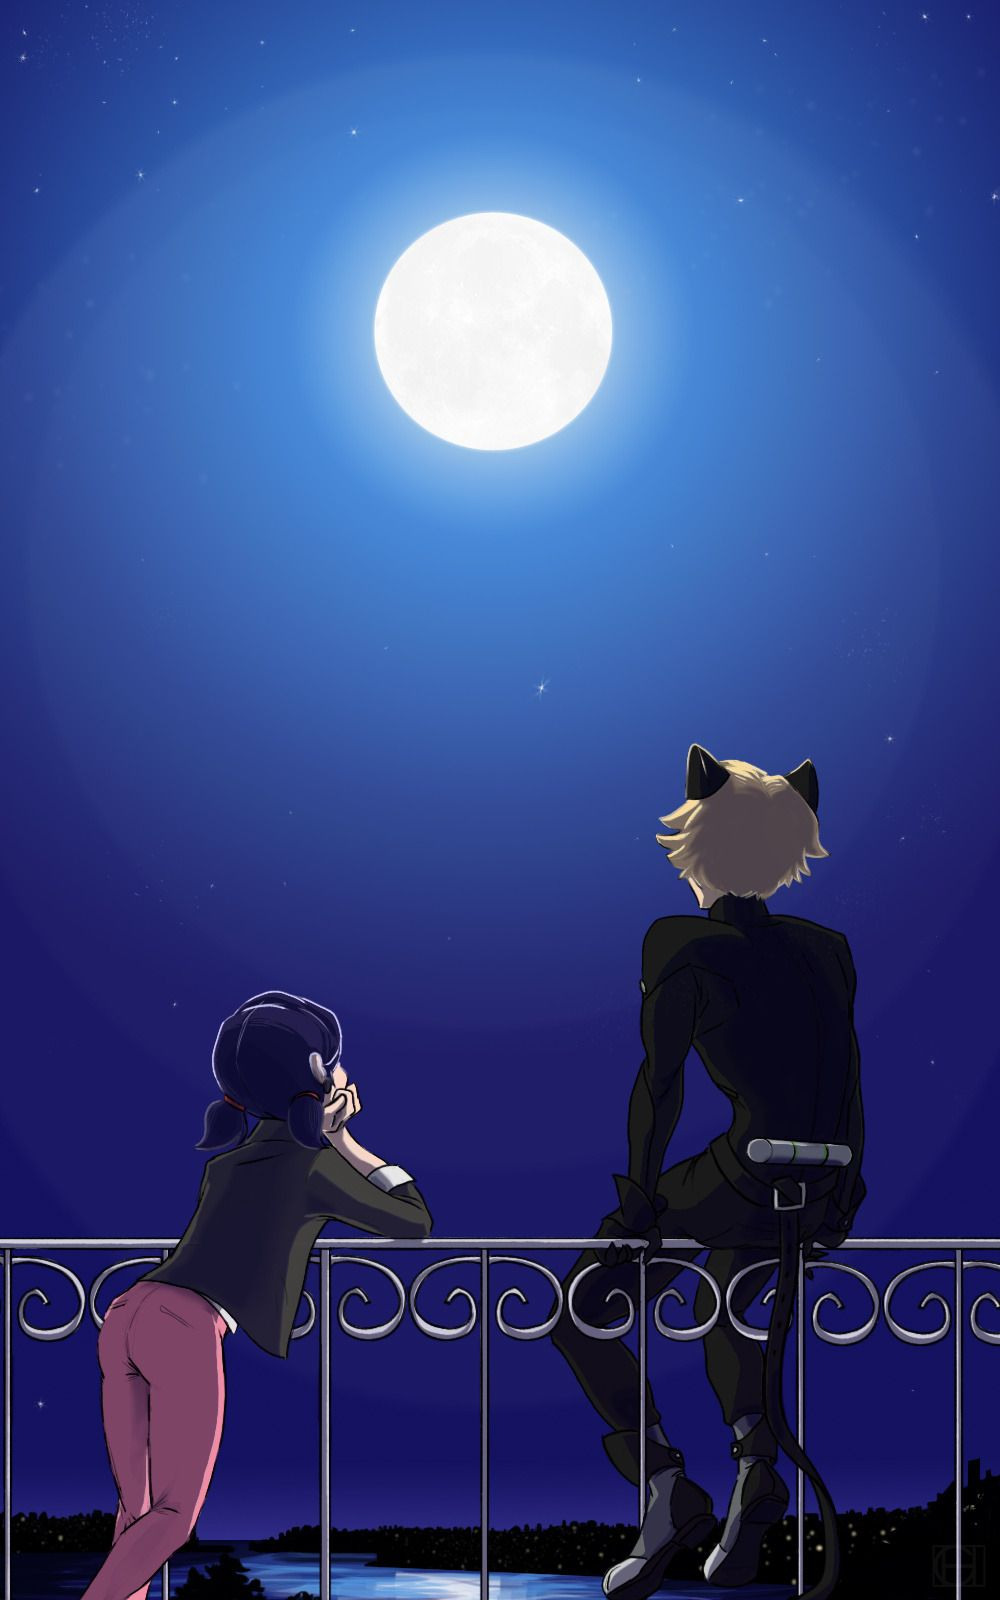 Cute Miraculous Ladybug Wallpaper My Plan Is To Stay Alive Til I Can See These Two Morons